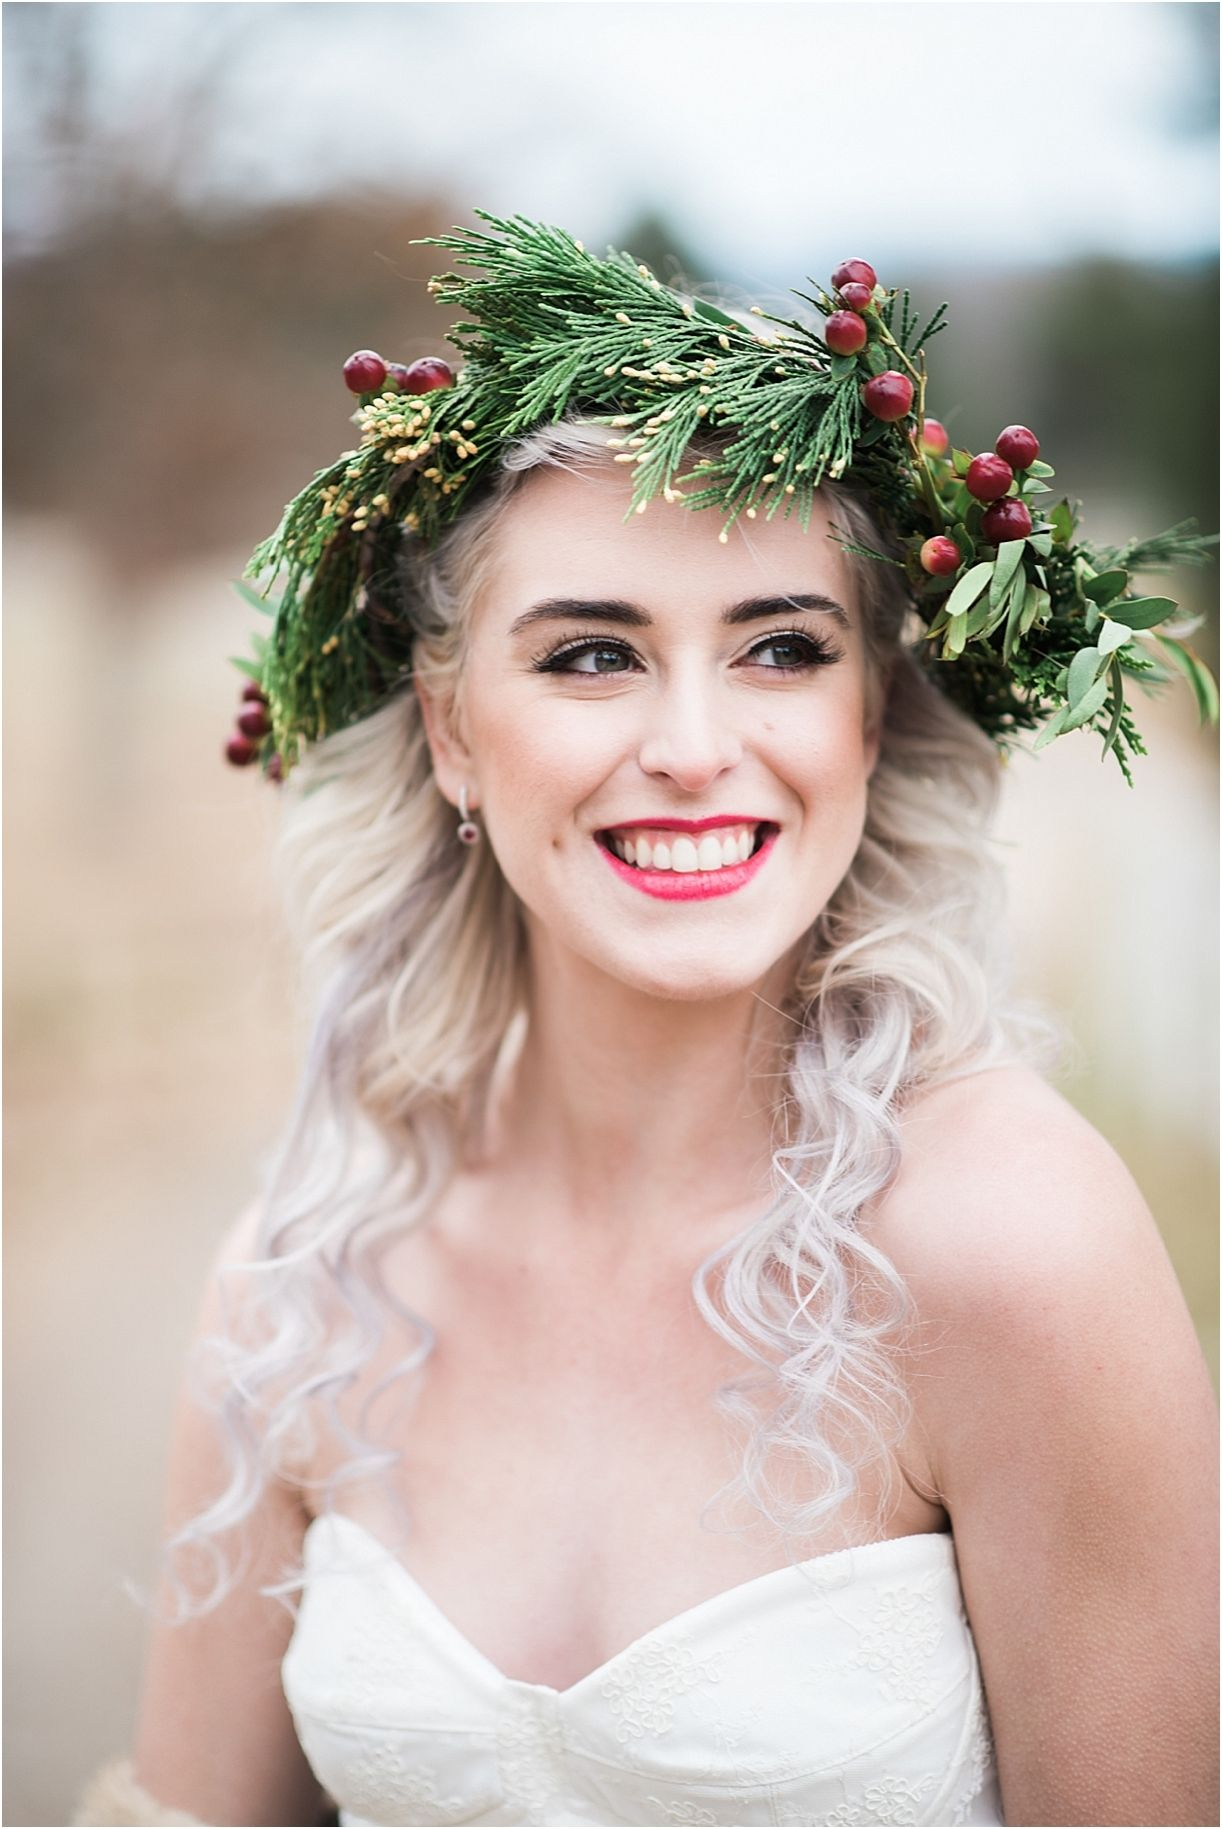 horses & hot cocoa winter bridal shoot | pinterest | hair makeup